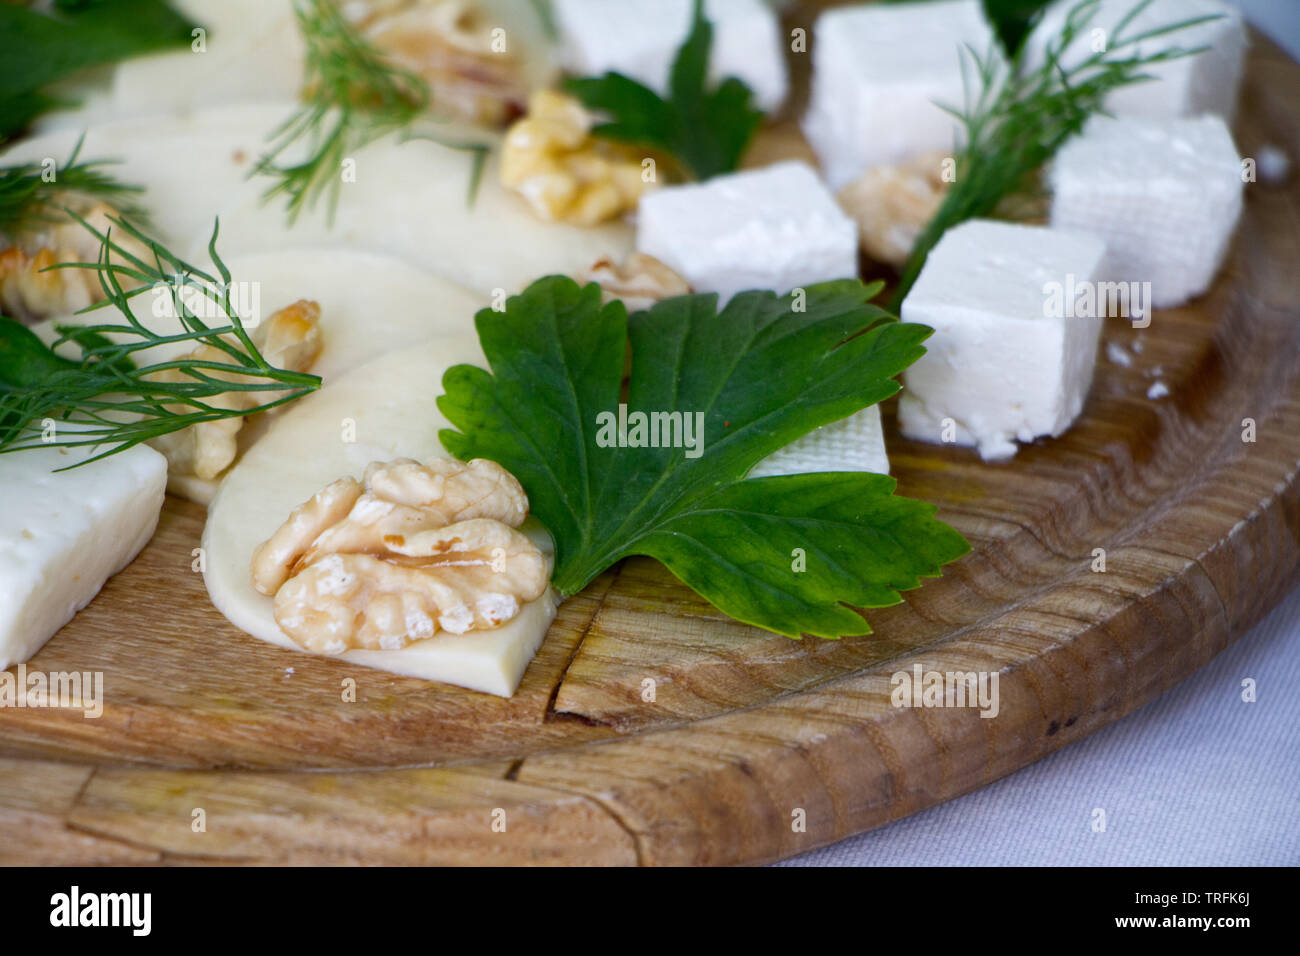 Extreme close-up of different types of cheeses, nuts, herbs and honey on a wooden board, the concept of a healthy snack, copyspace Stock Photo